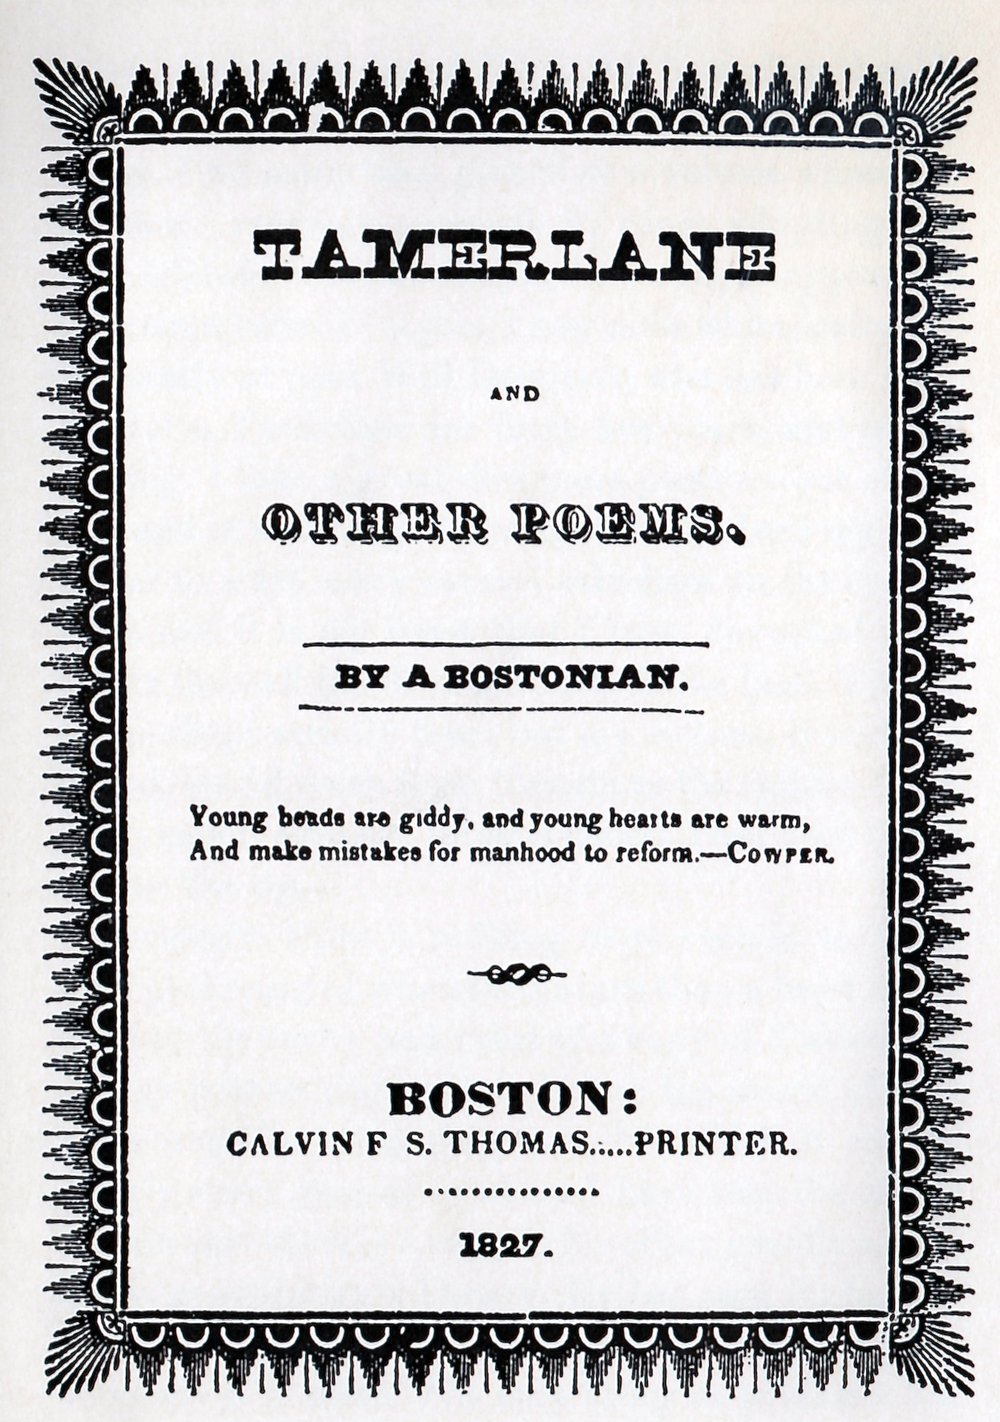 The cover of Tamerlane from Vincent Starrett's book   Penny Wise & Book Foolish,  where h e reprints his essay on  Tamerlane .